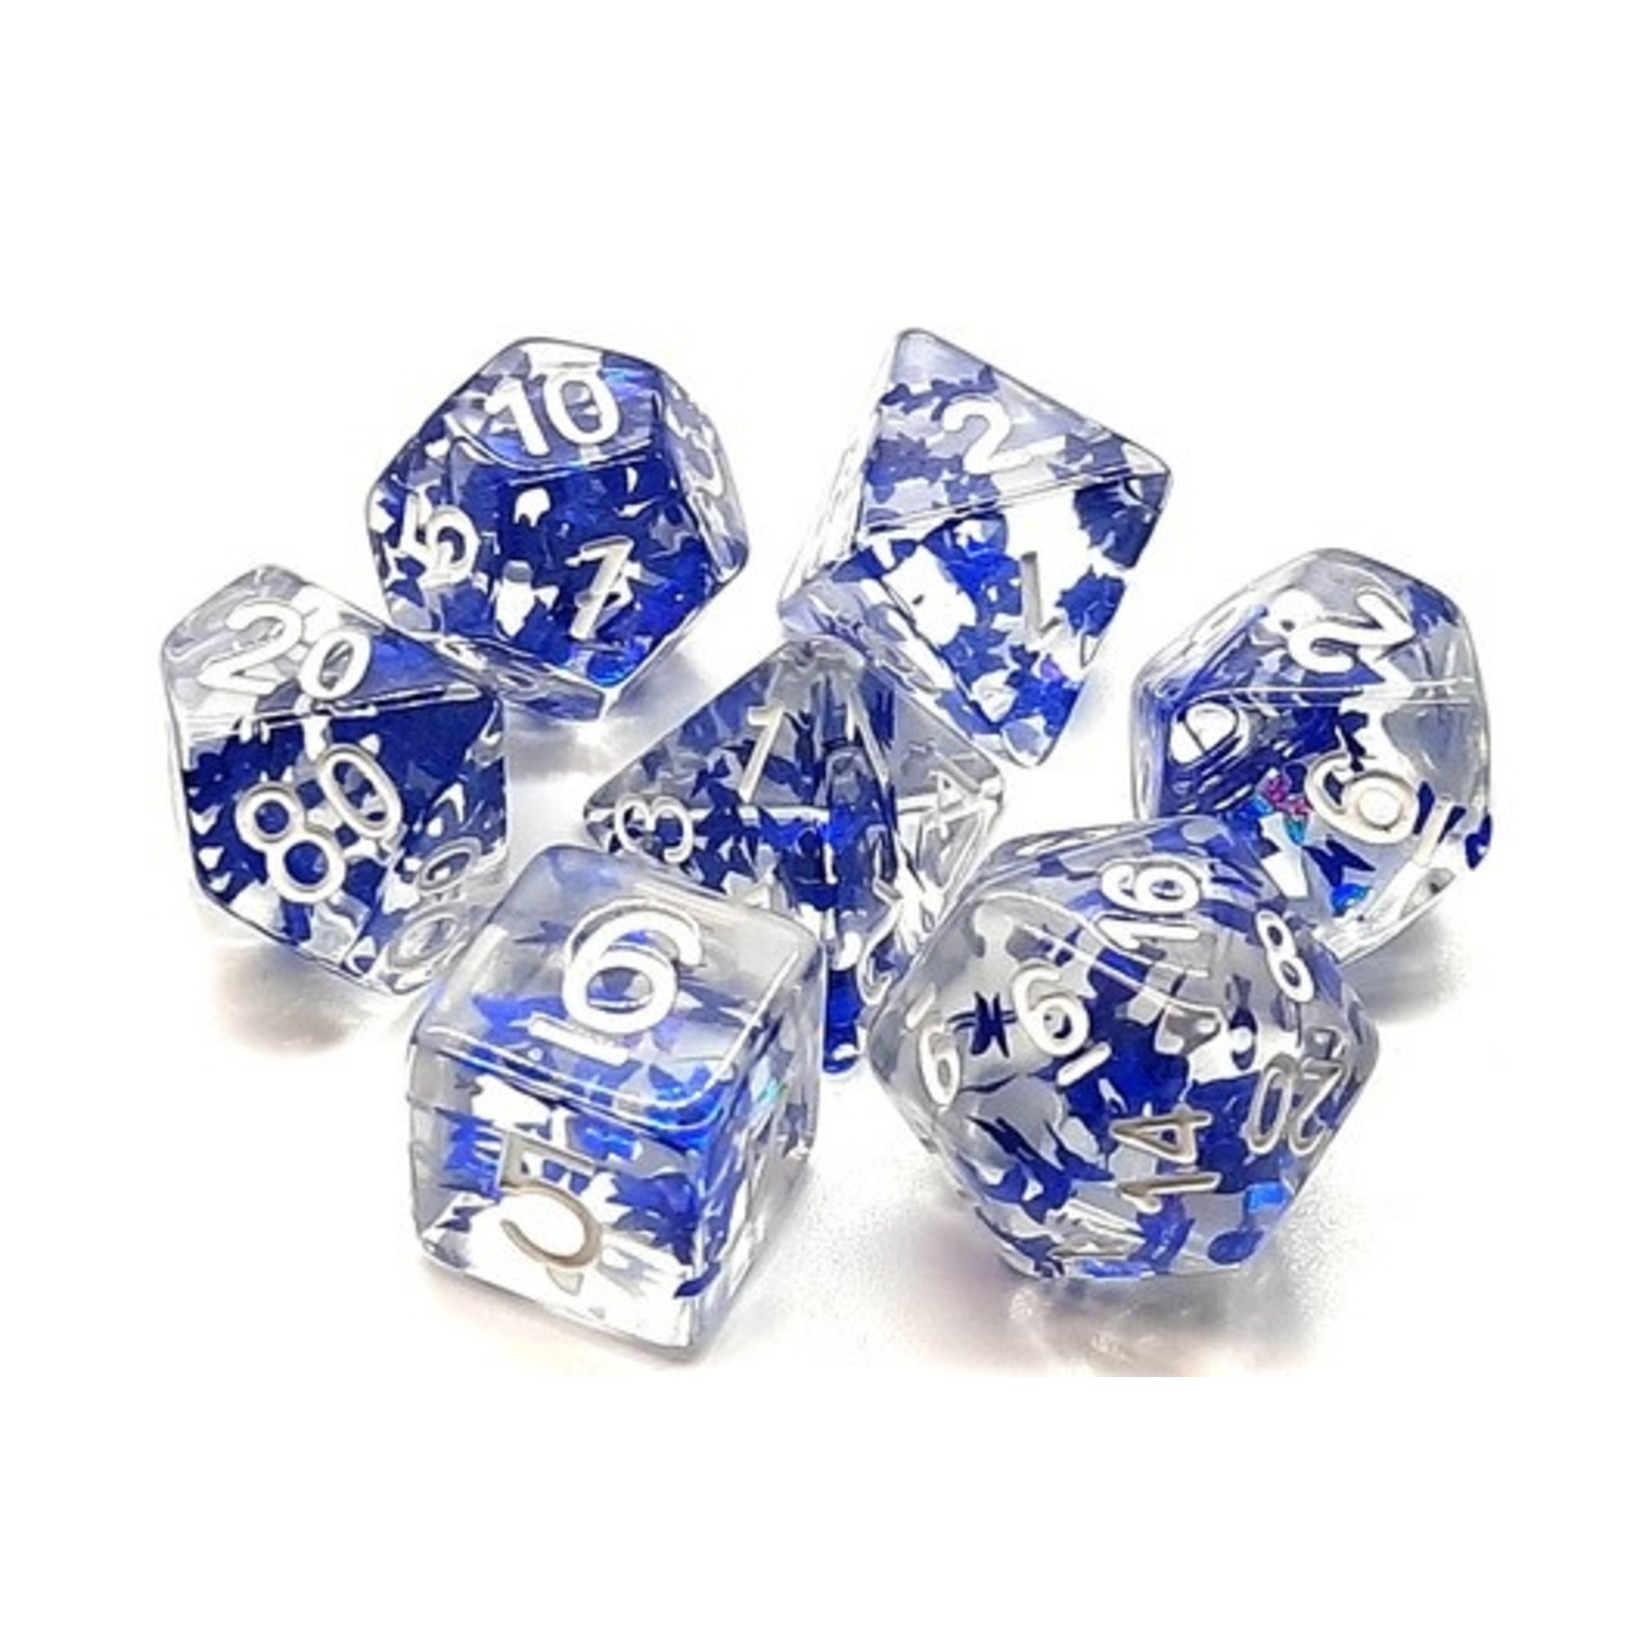 Old School 7 Piece Dice Set: Infused - Sapphire Butterfly